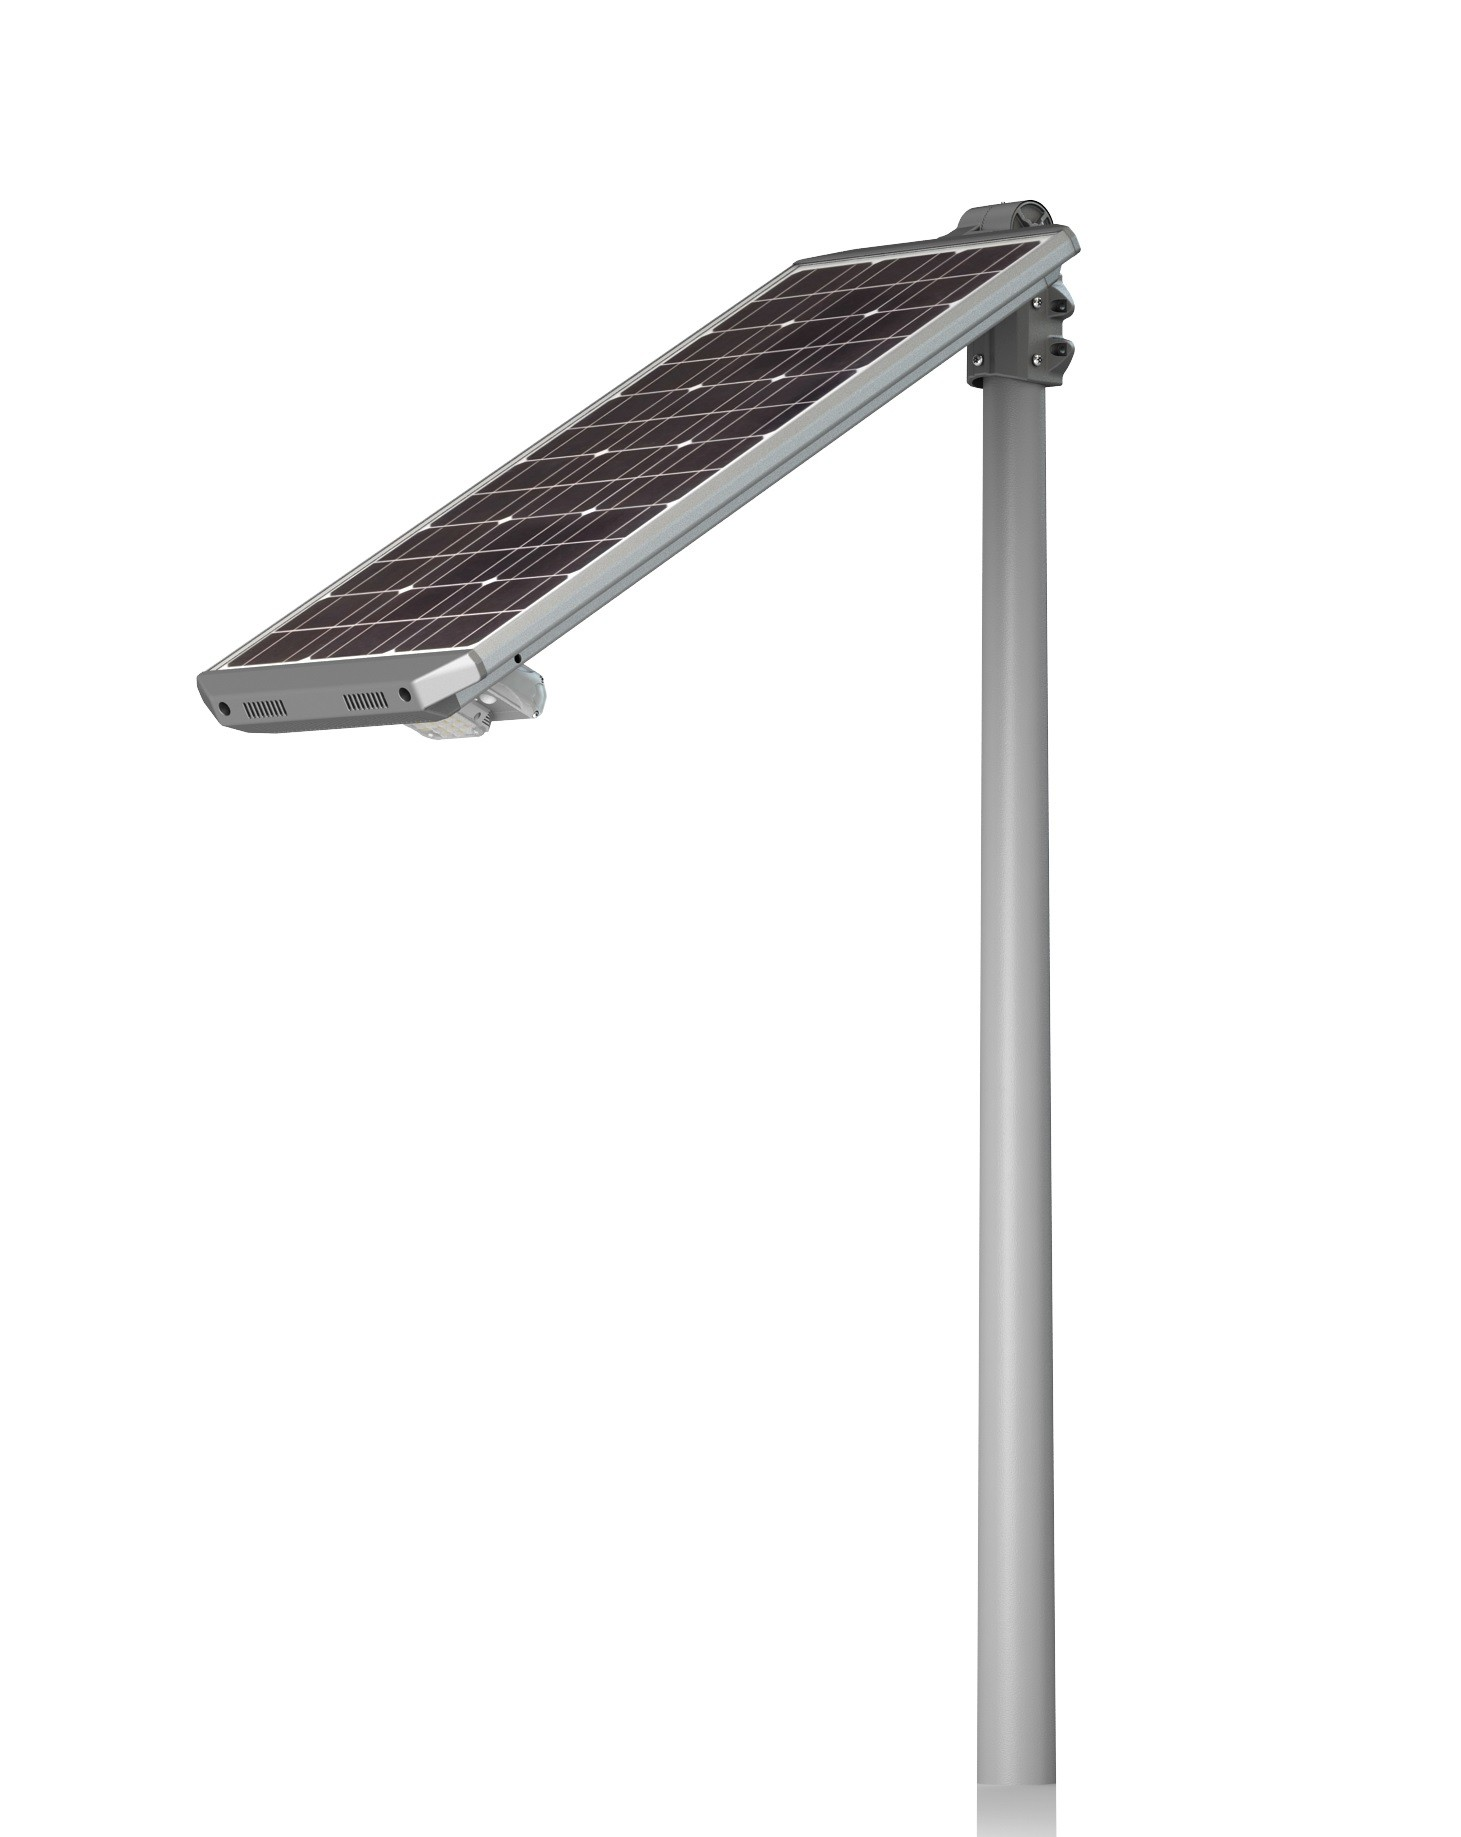 HC832AE3CR8030NMC - Solar Street Light AE3C Swifel type, 80W PV, 30W Cree LED